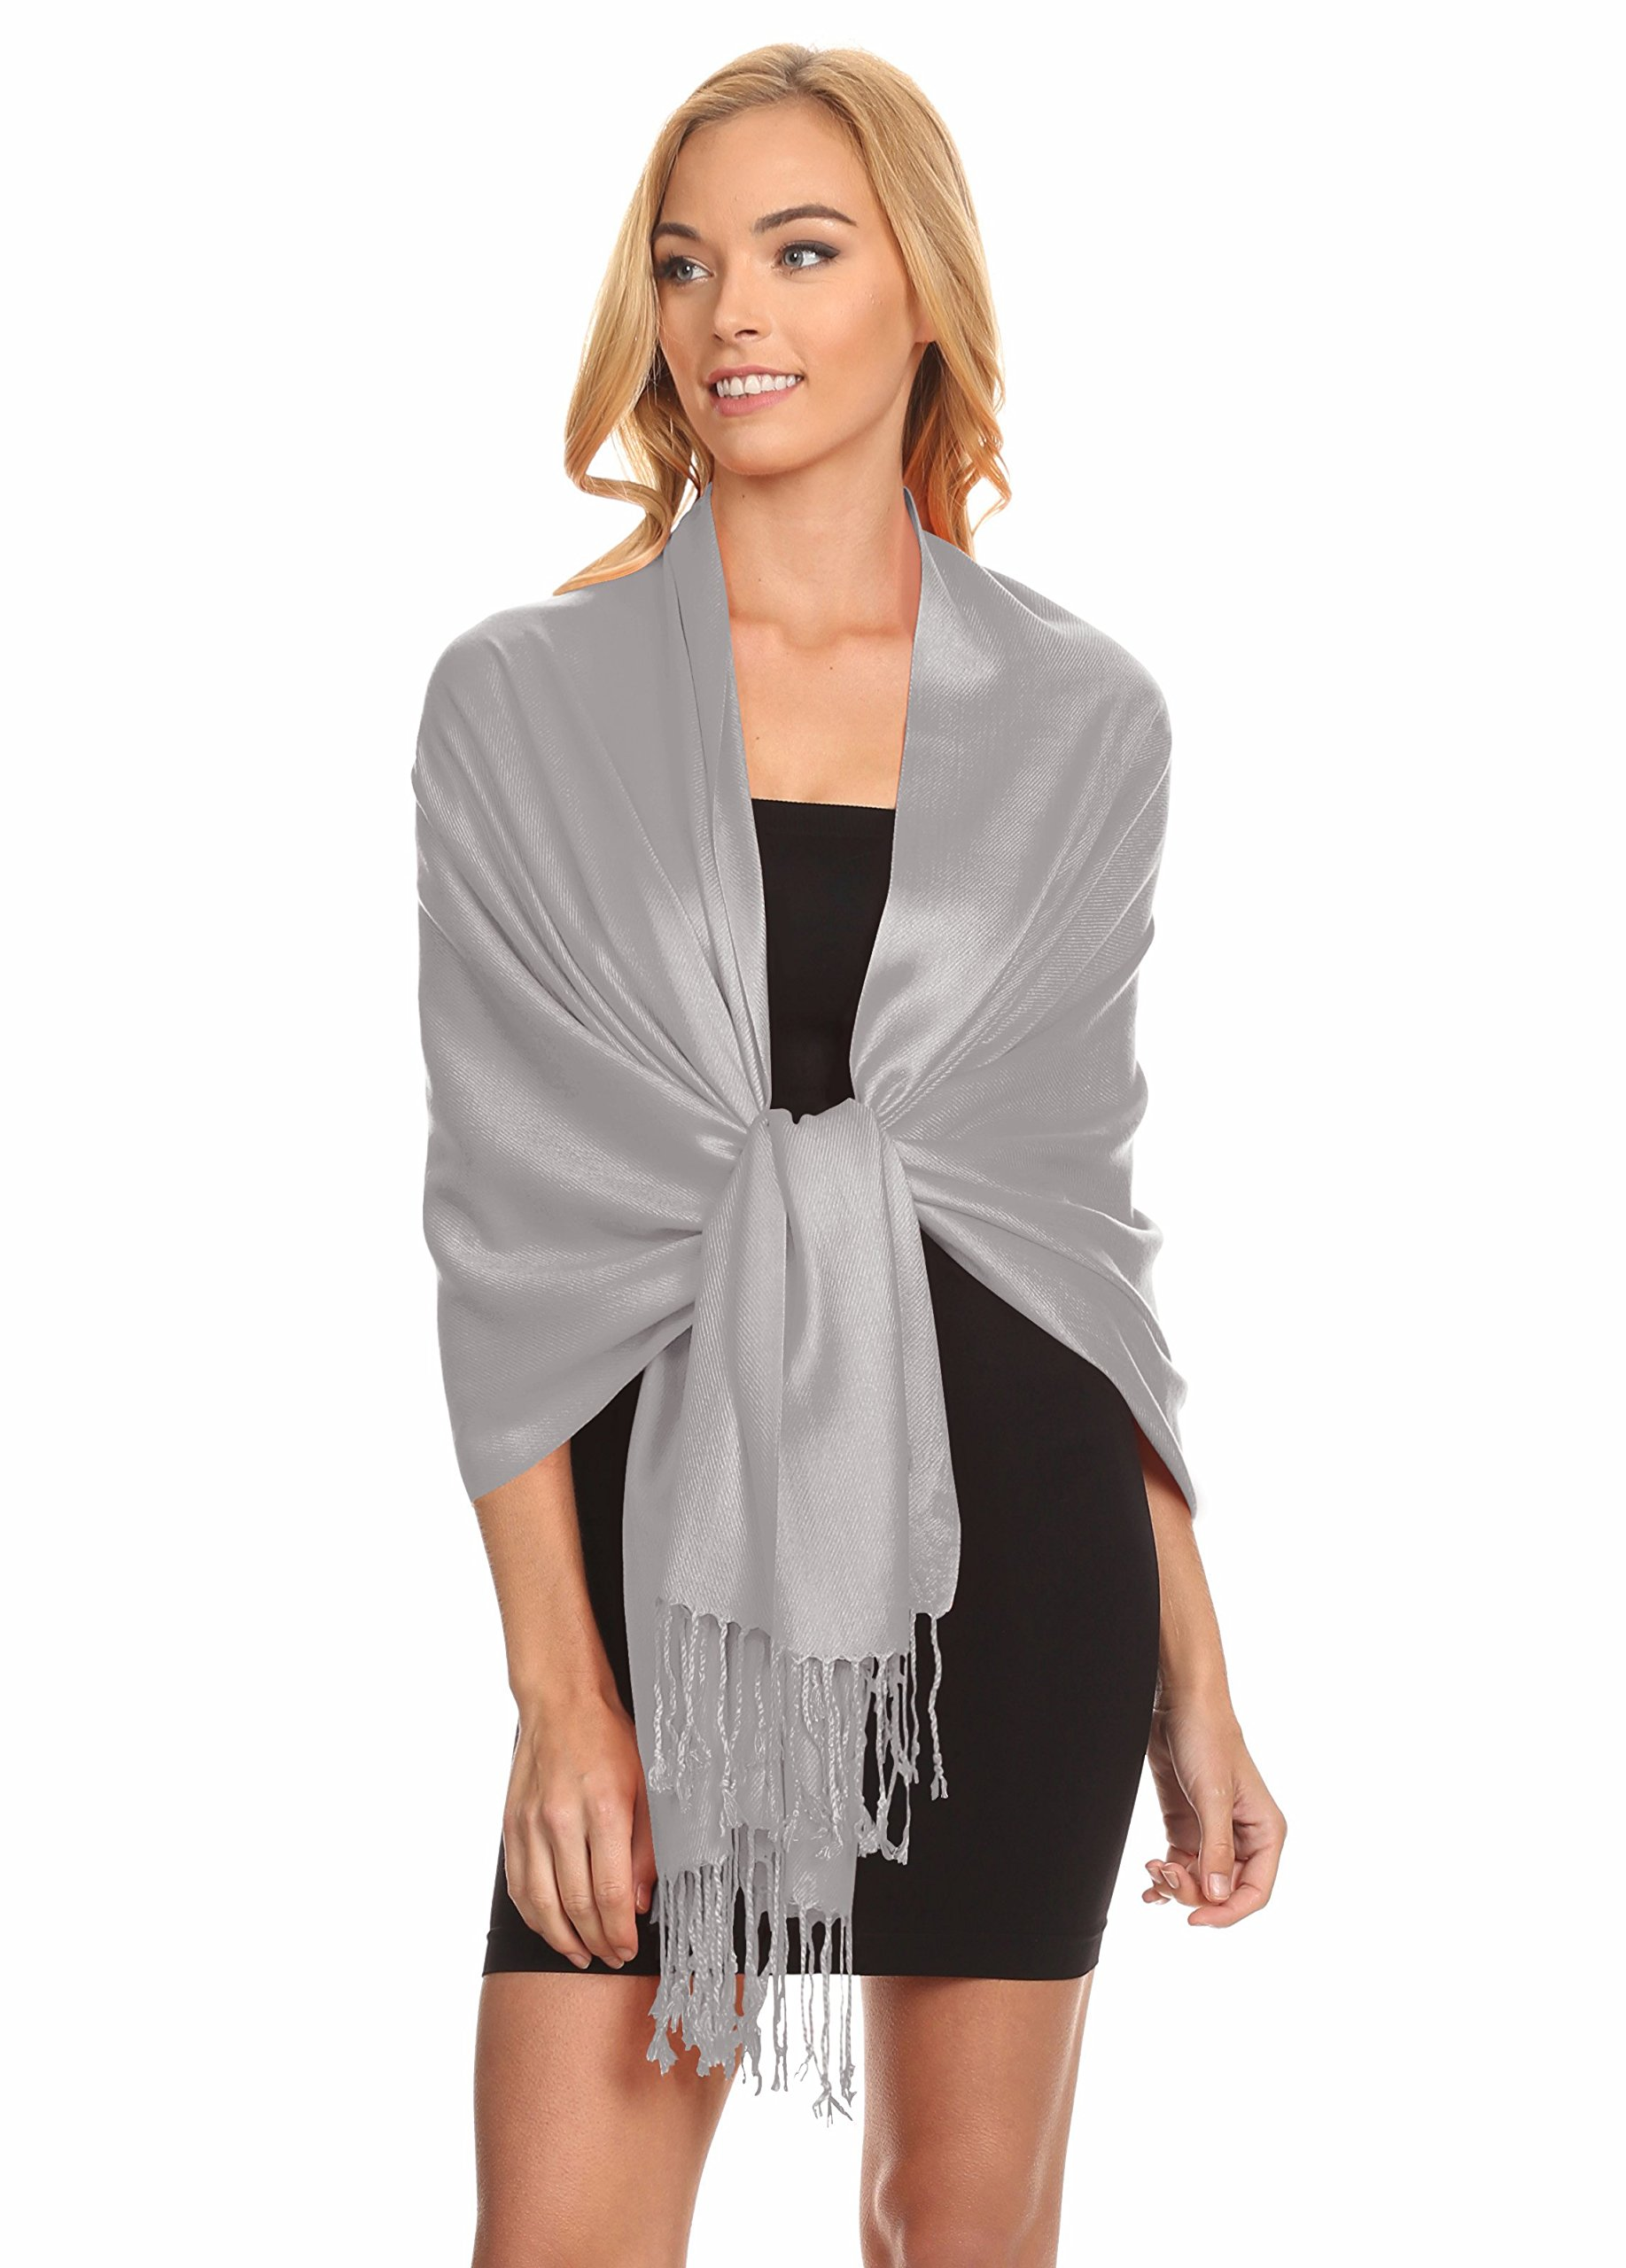 Simlu Wrap Scarf Pashmina Shawls and Wraps, Silky Wedding Scarf Stole for Women One Size Silver